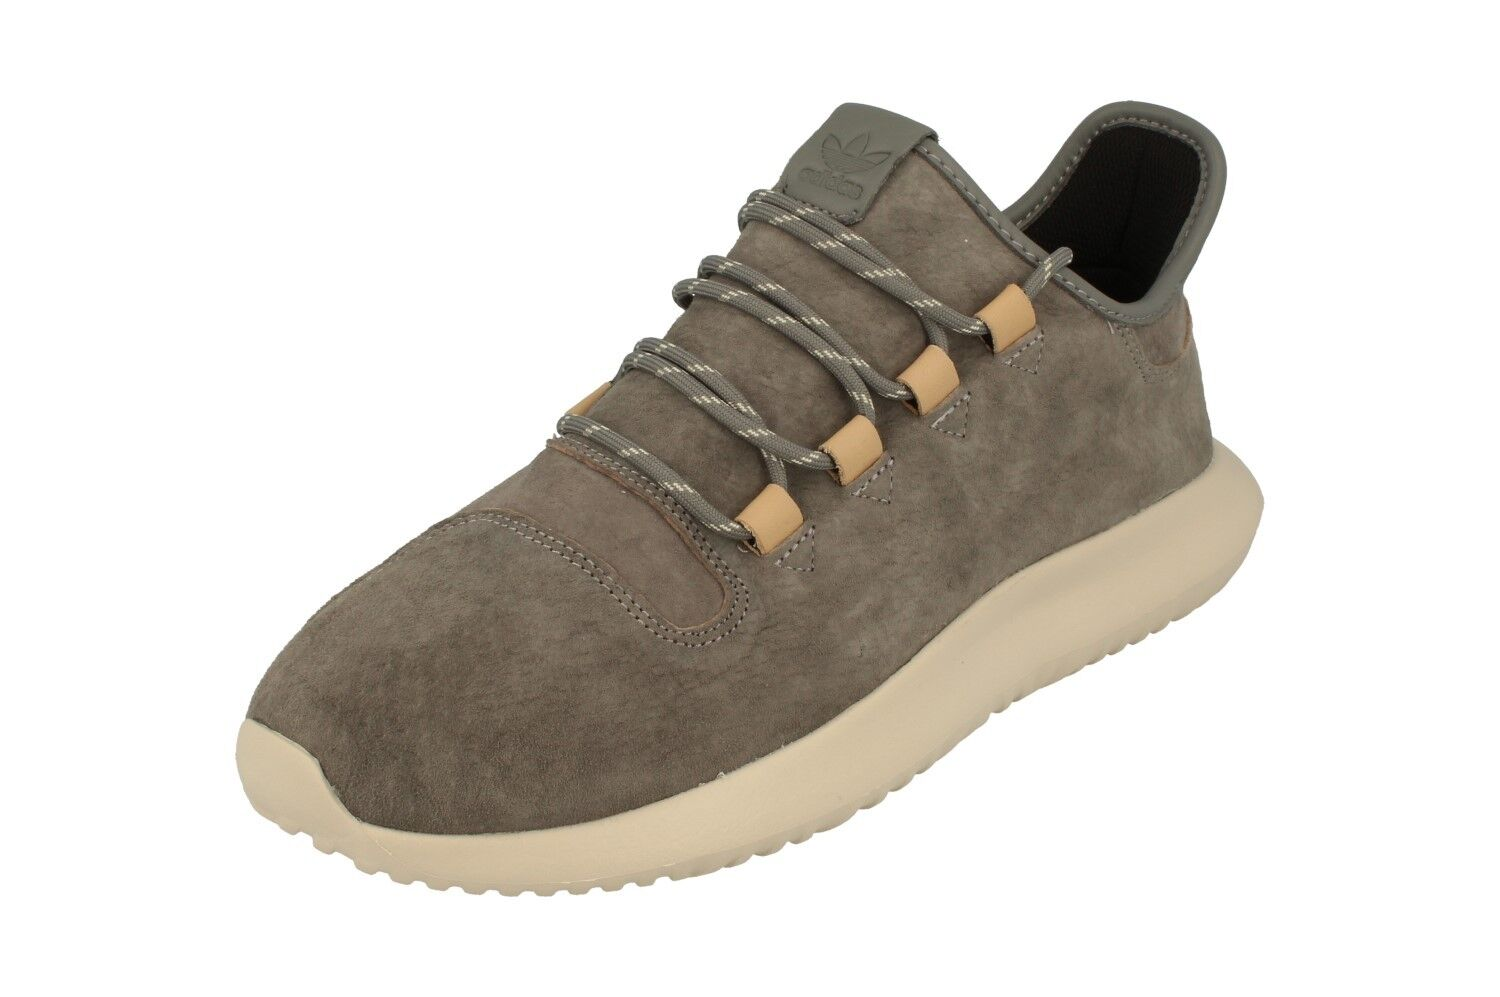 Adidas Zapatillas Originals Tubular Shadow Zapatillas Hombre Zapatillas Adidas BY3569 Zapatos ce53fd